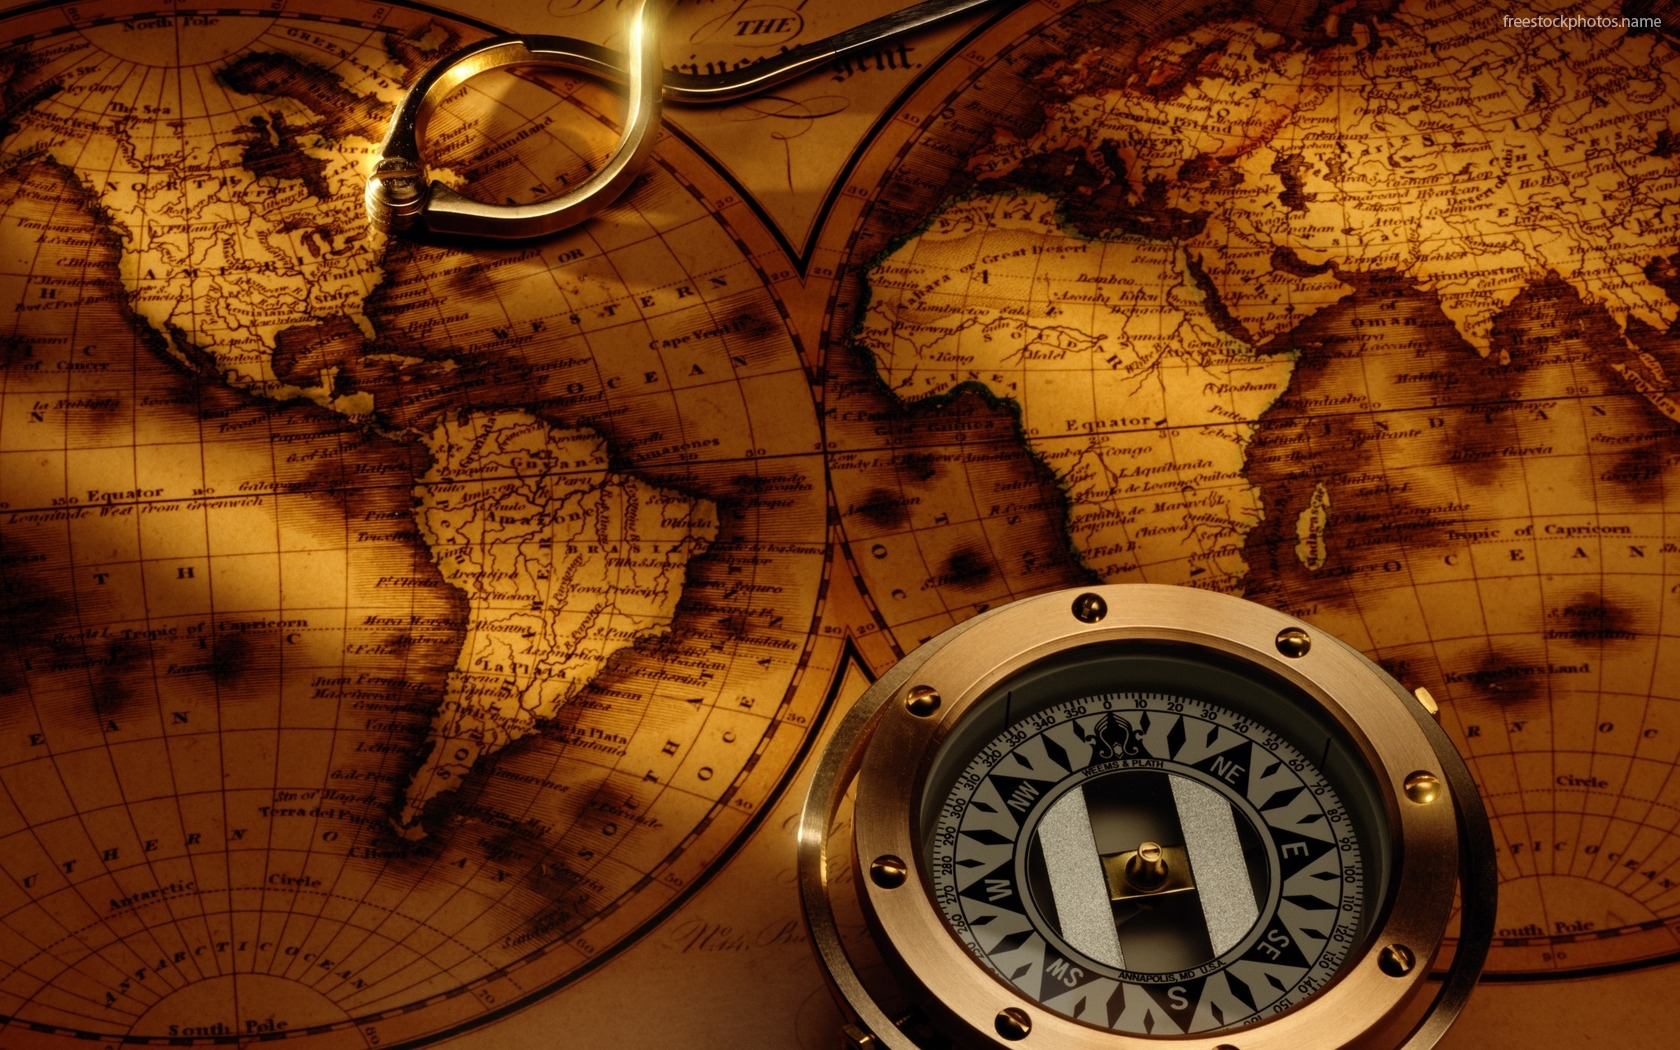 Old world map wallpaper wallpapersafari download stock photos of old world map with compass images photography 1680x1050 gumiabroncs Image collections